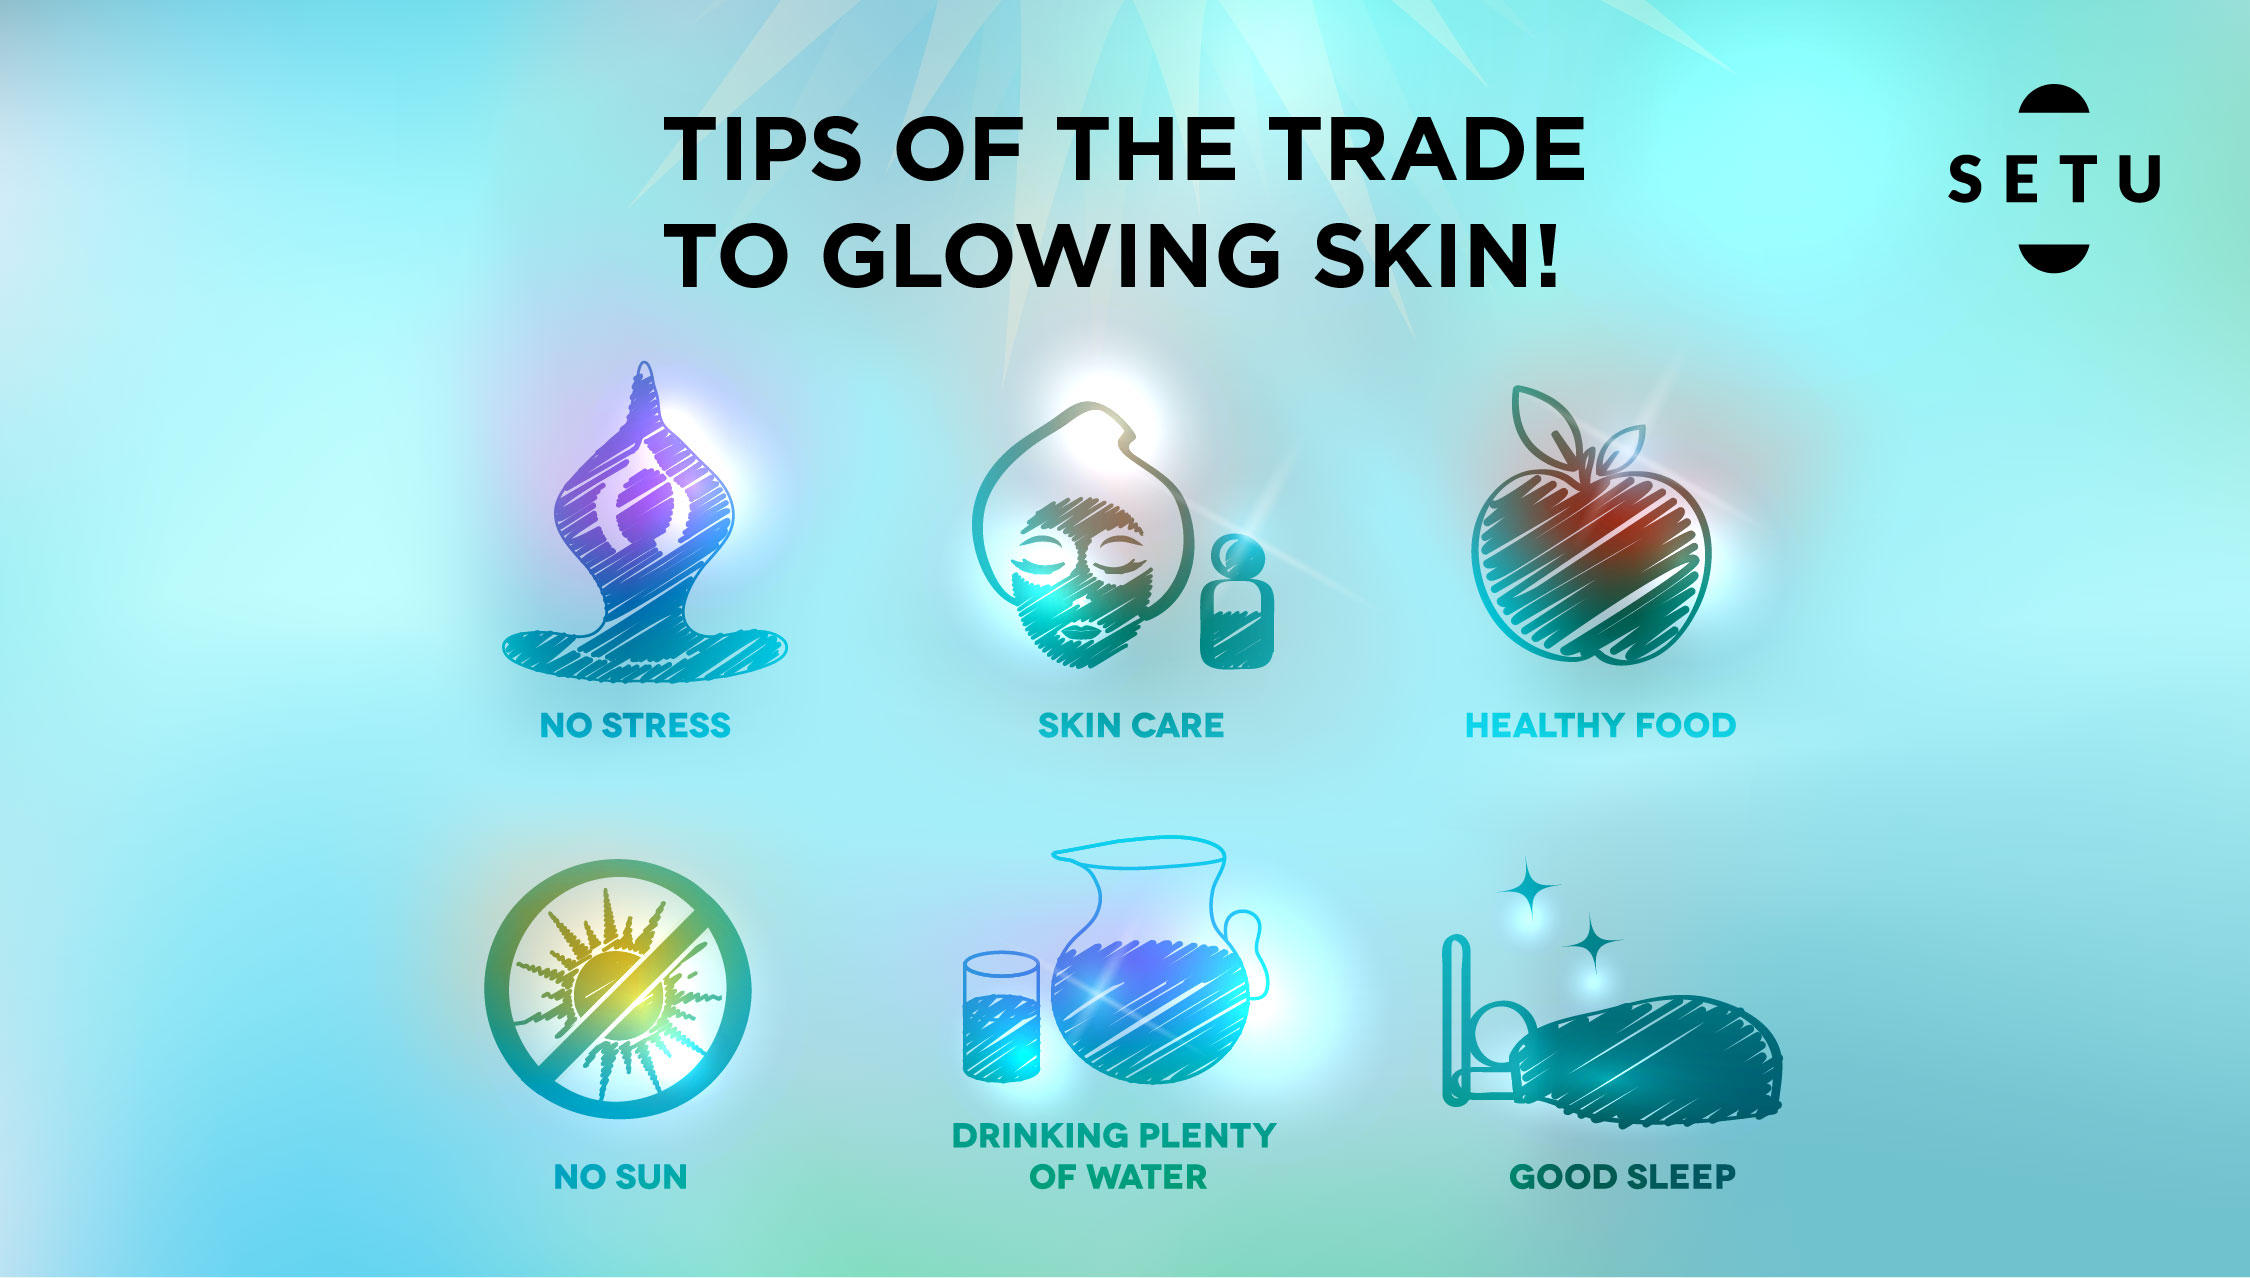 Tips of the Trade to Glowing Skin